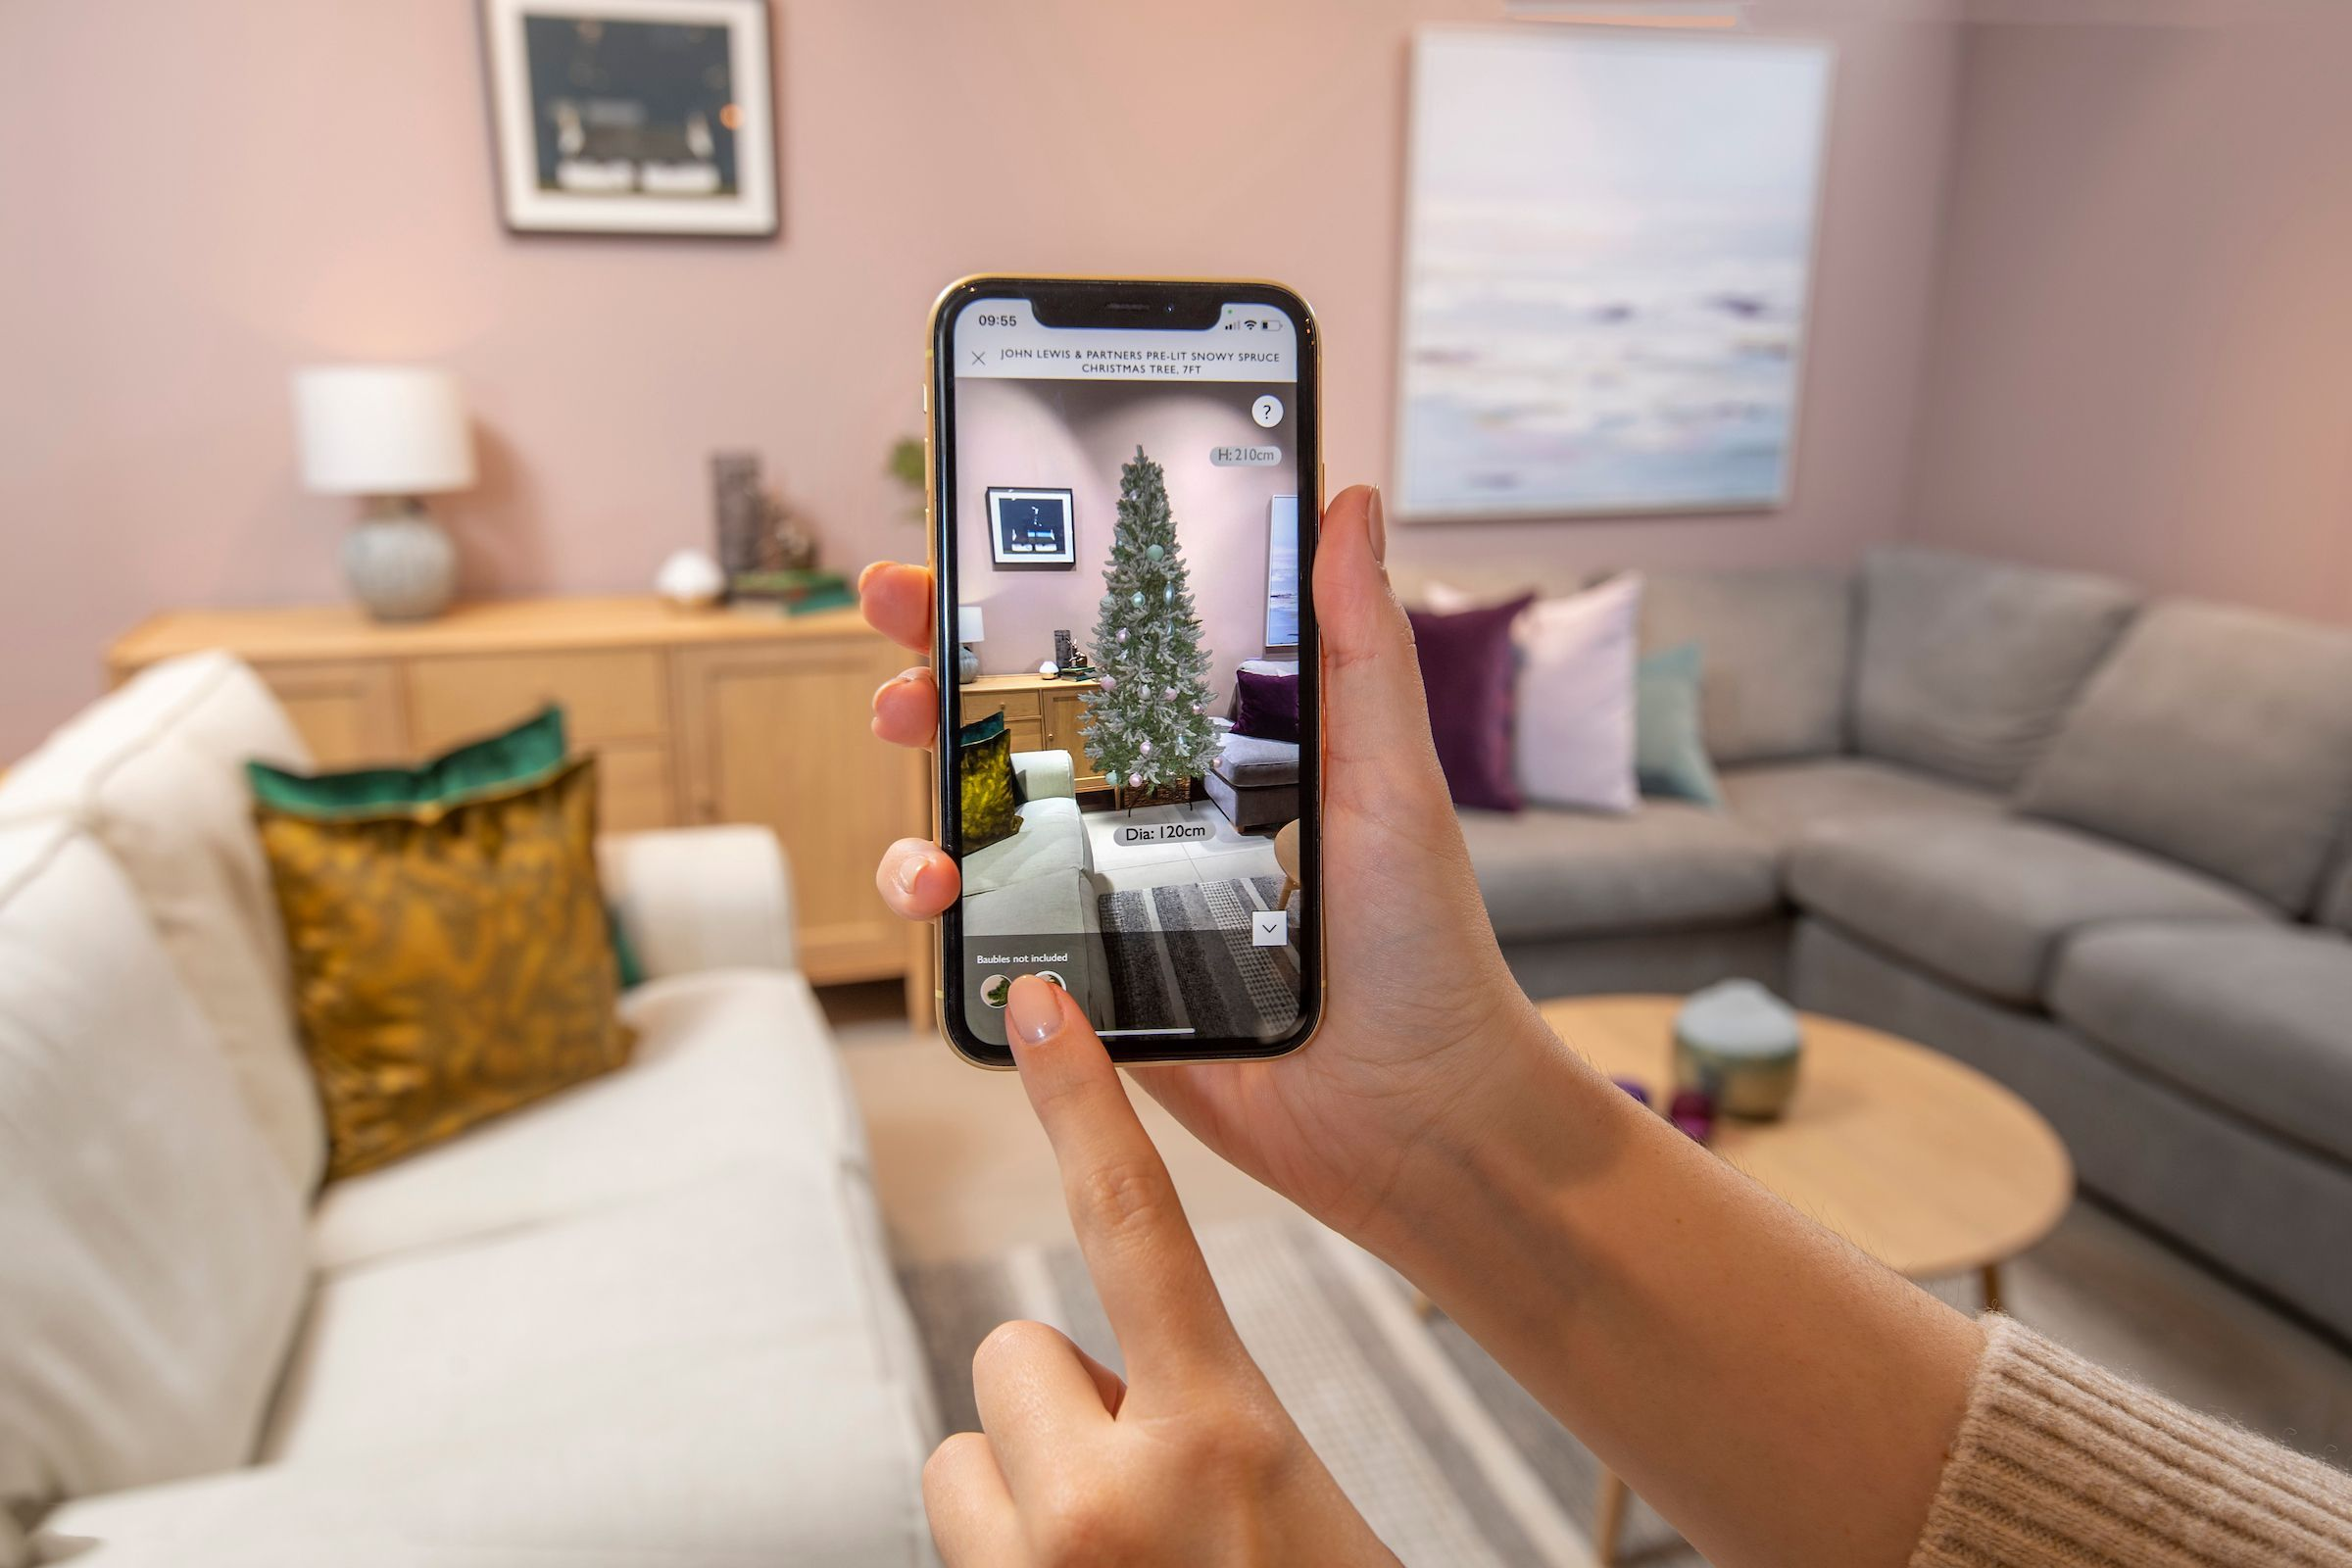 You can view the Christmas tree you want in your living room using new John Lewis app